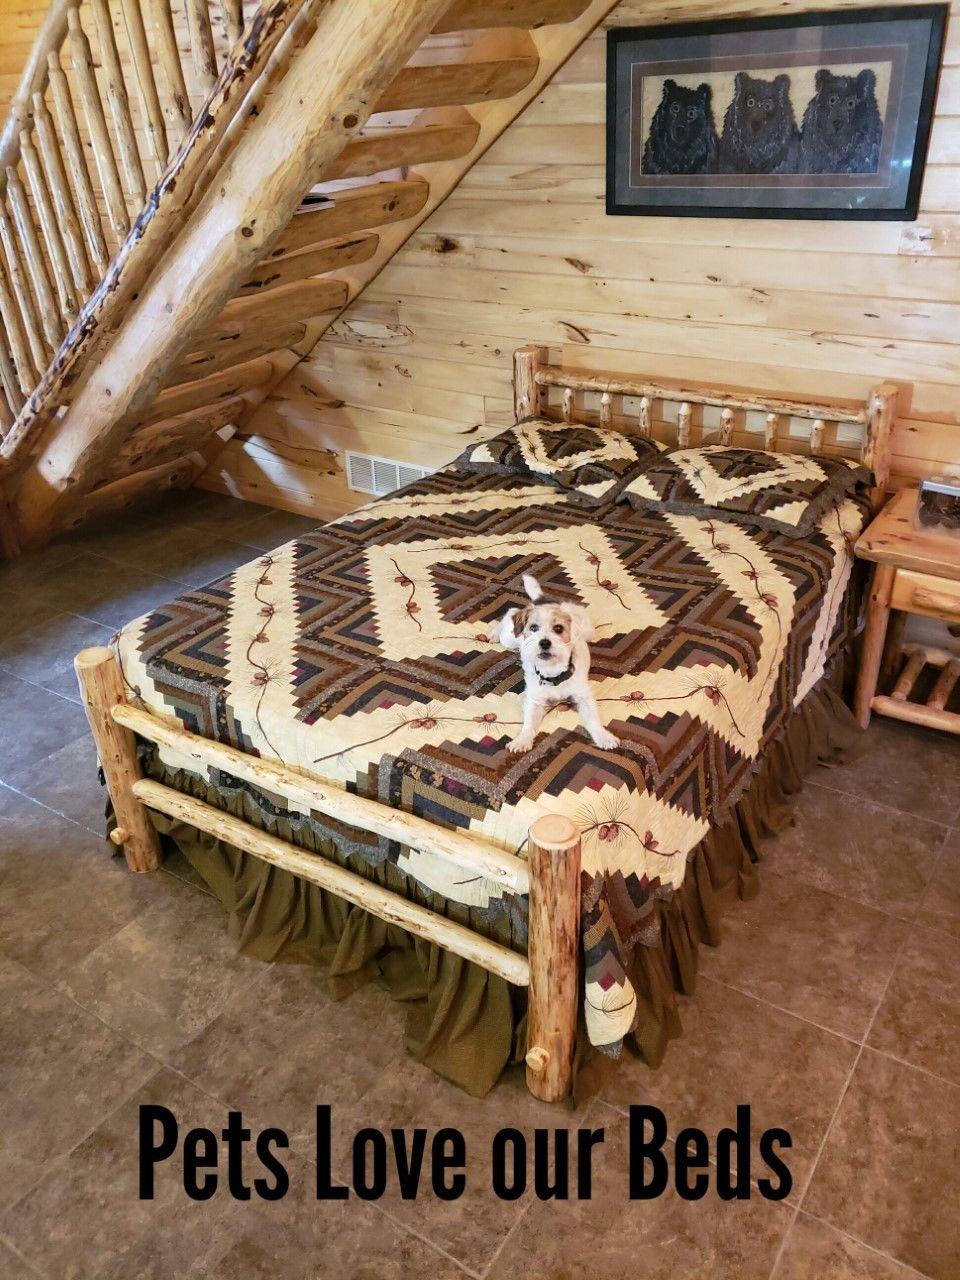 New Wilderness Rustic Log Bed Frame Kit Twistofnature